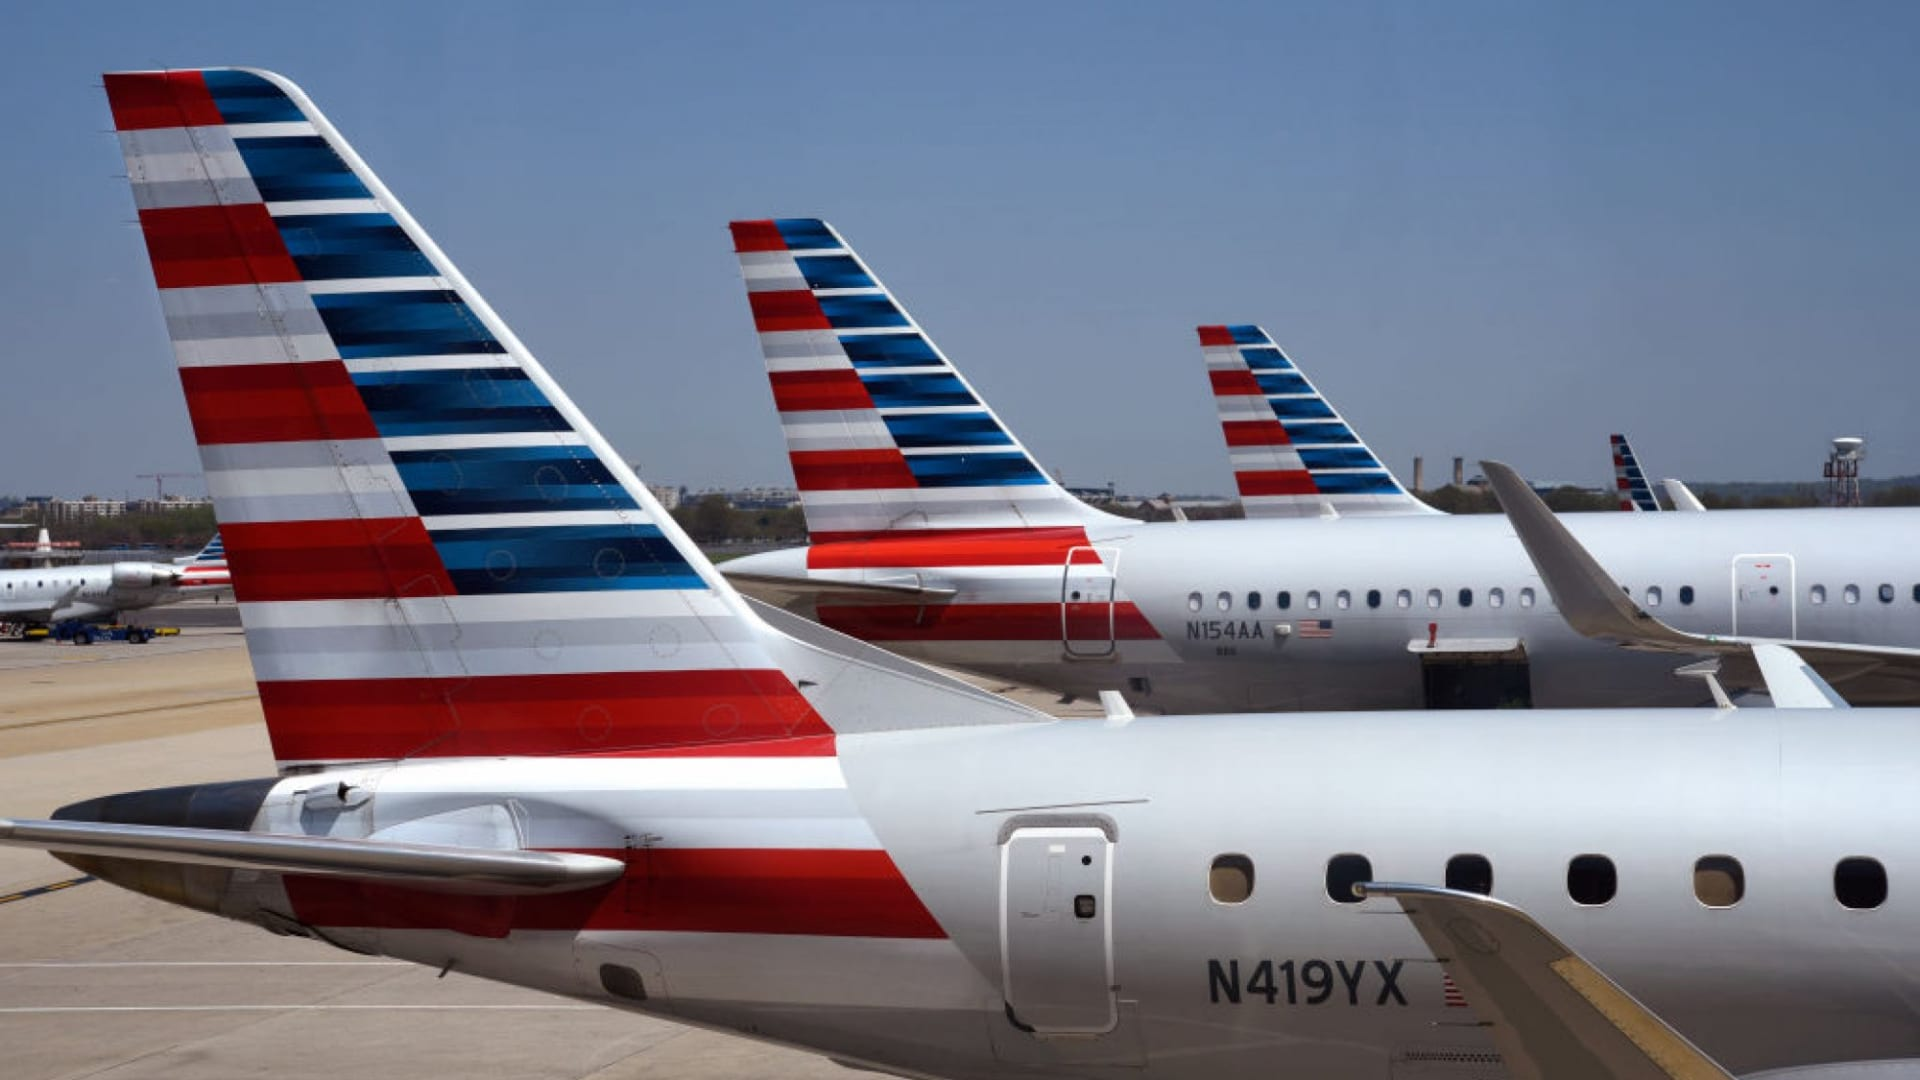 American Airlines Just Launched a Really Interesting New Program. (Yes, You Should Definitely Copy It)